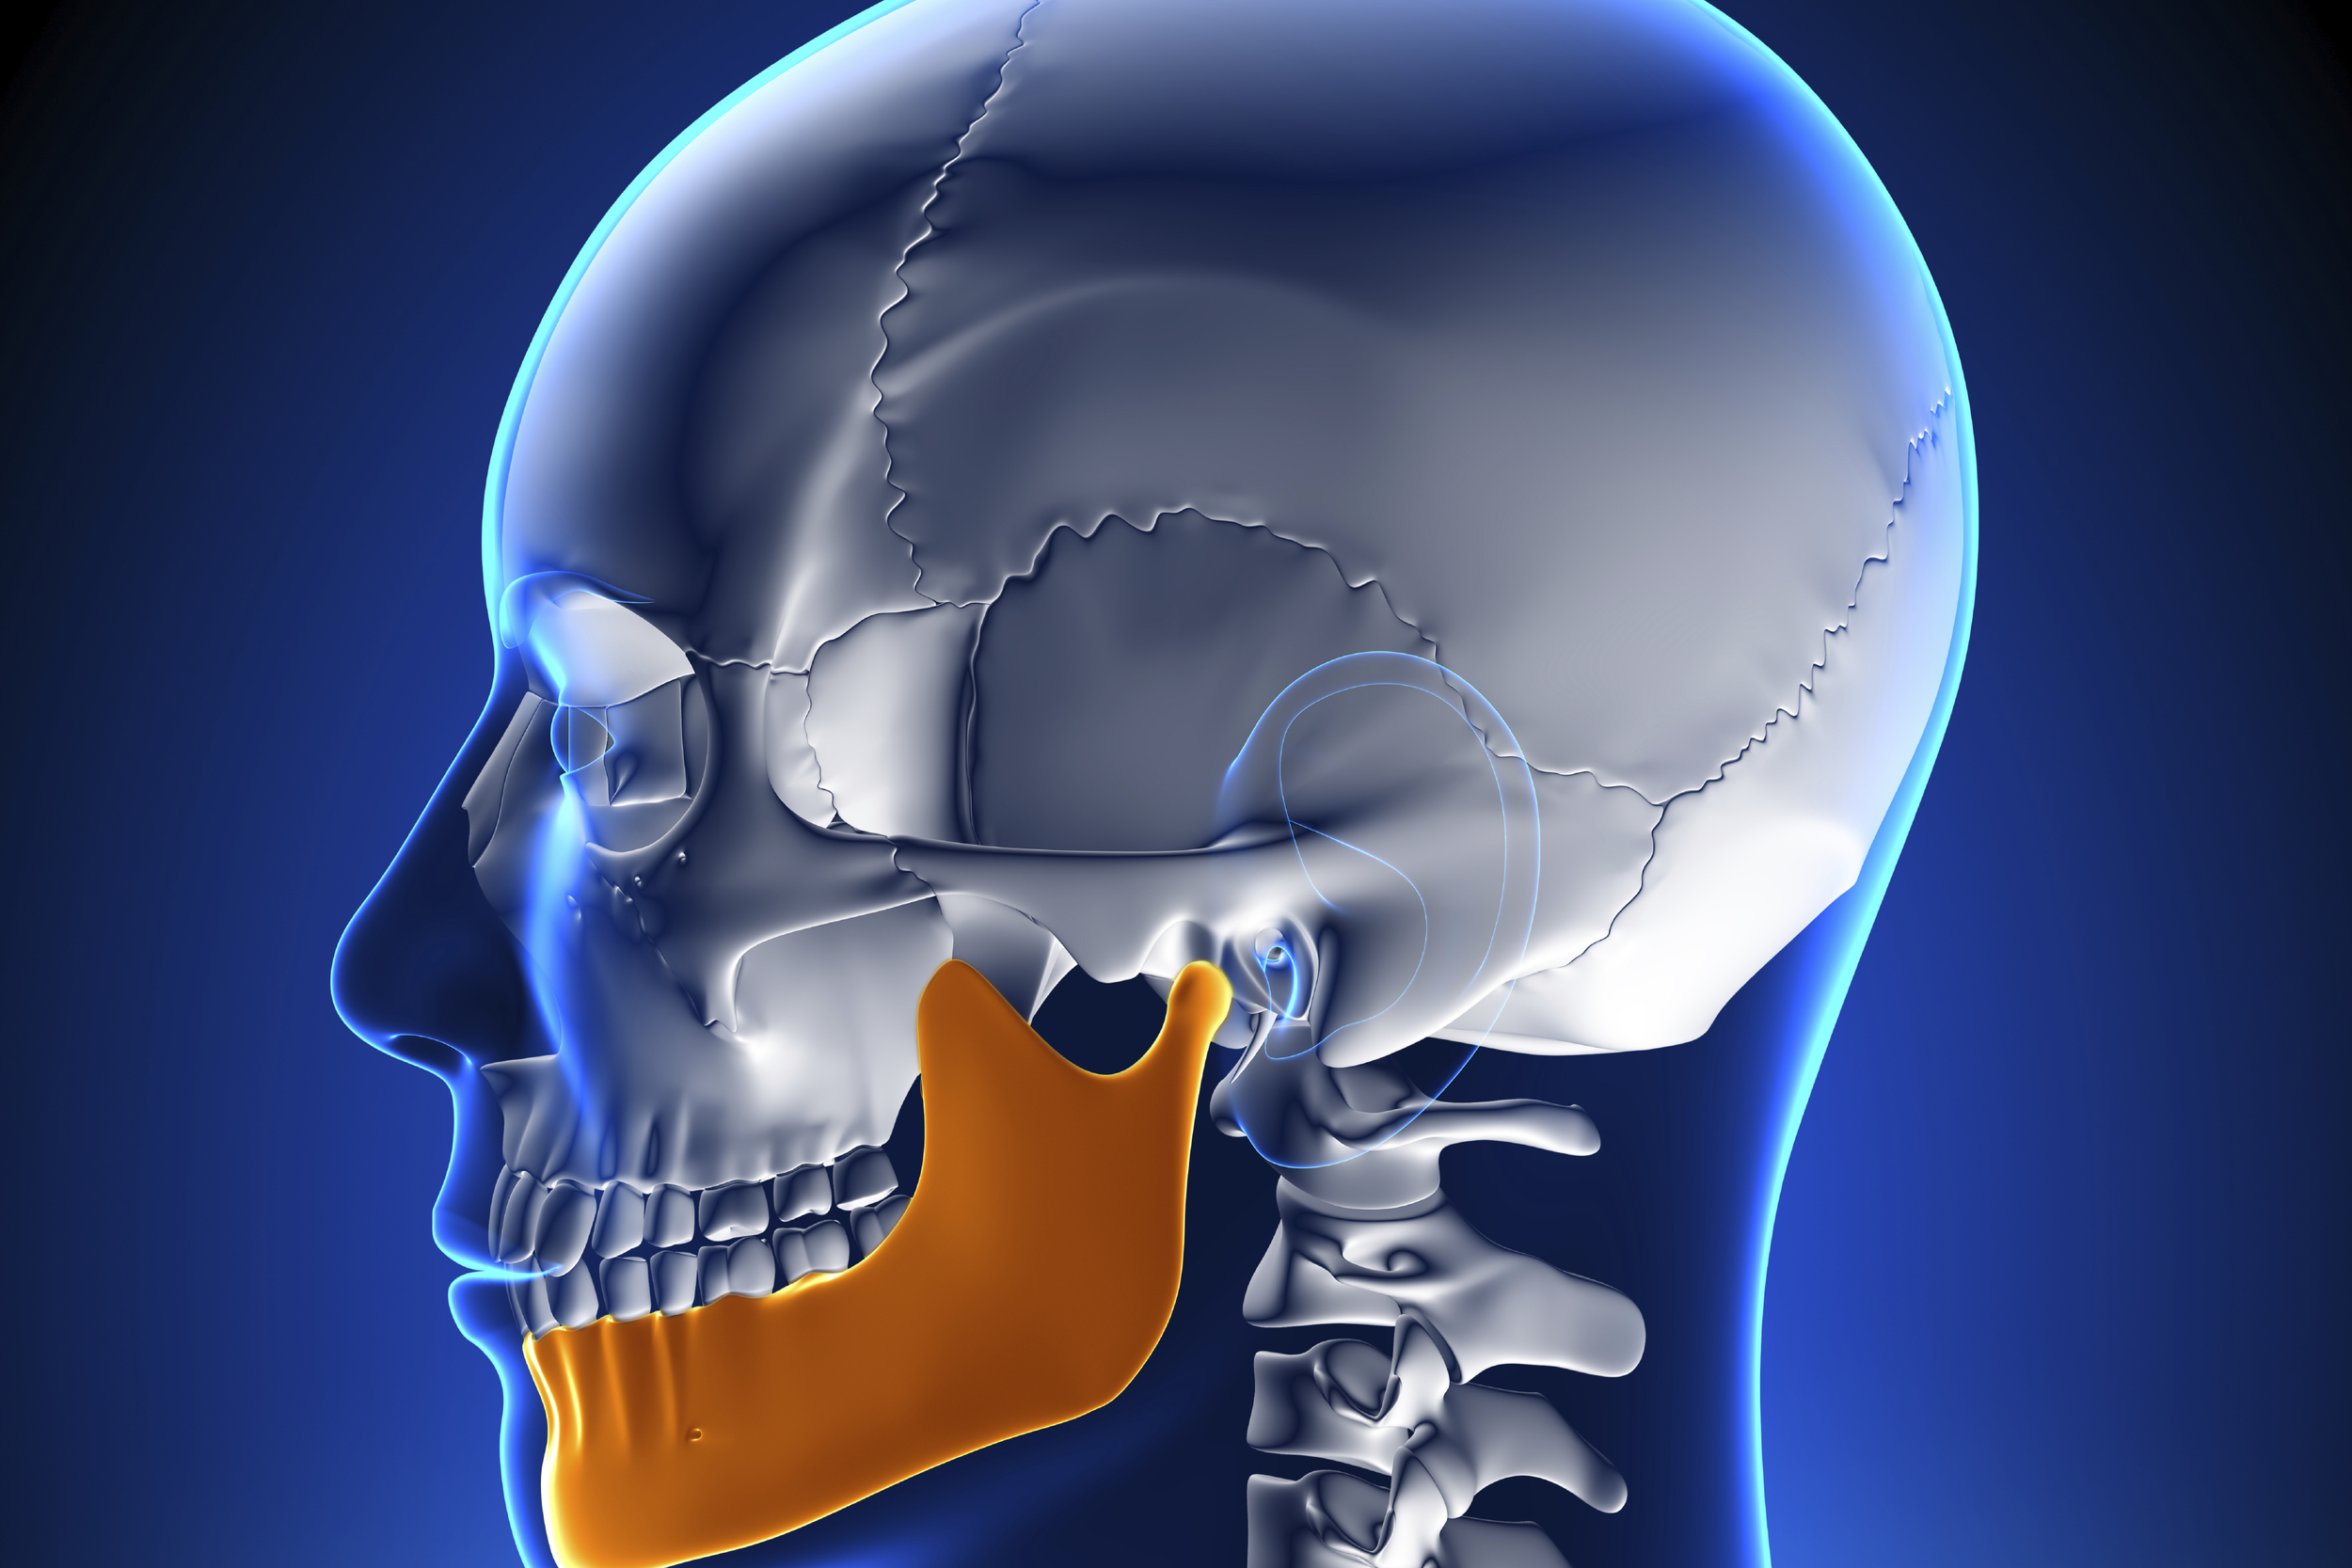 TMJ dysfunction can be caused by anxiety, teeth grinding or arthritis, among many others